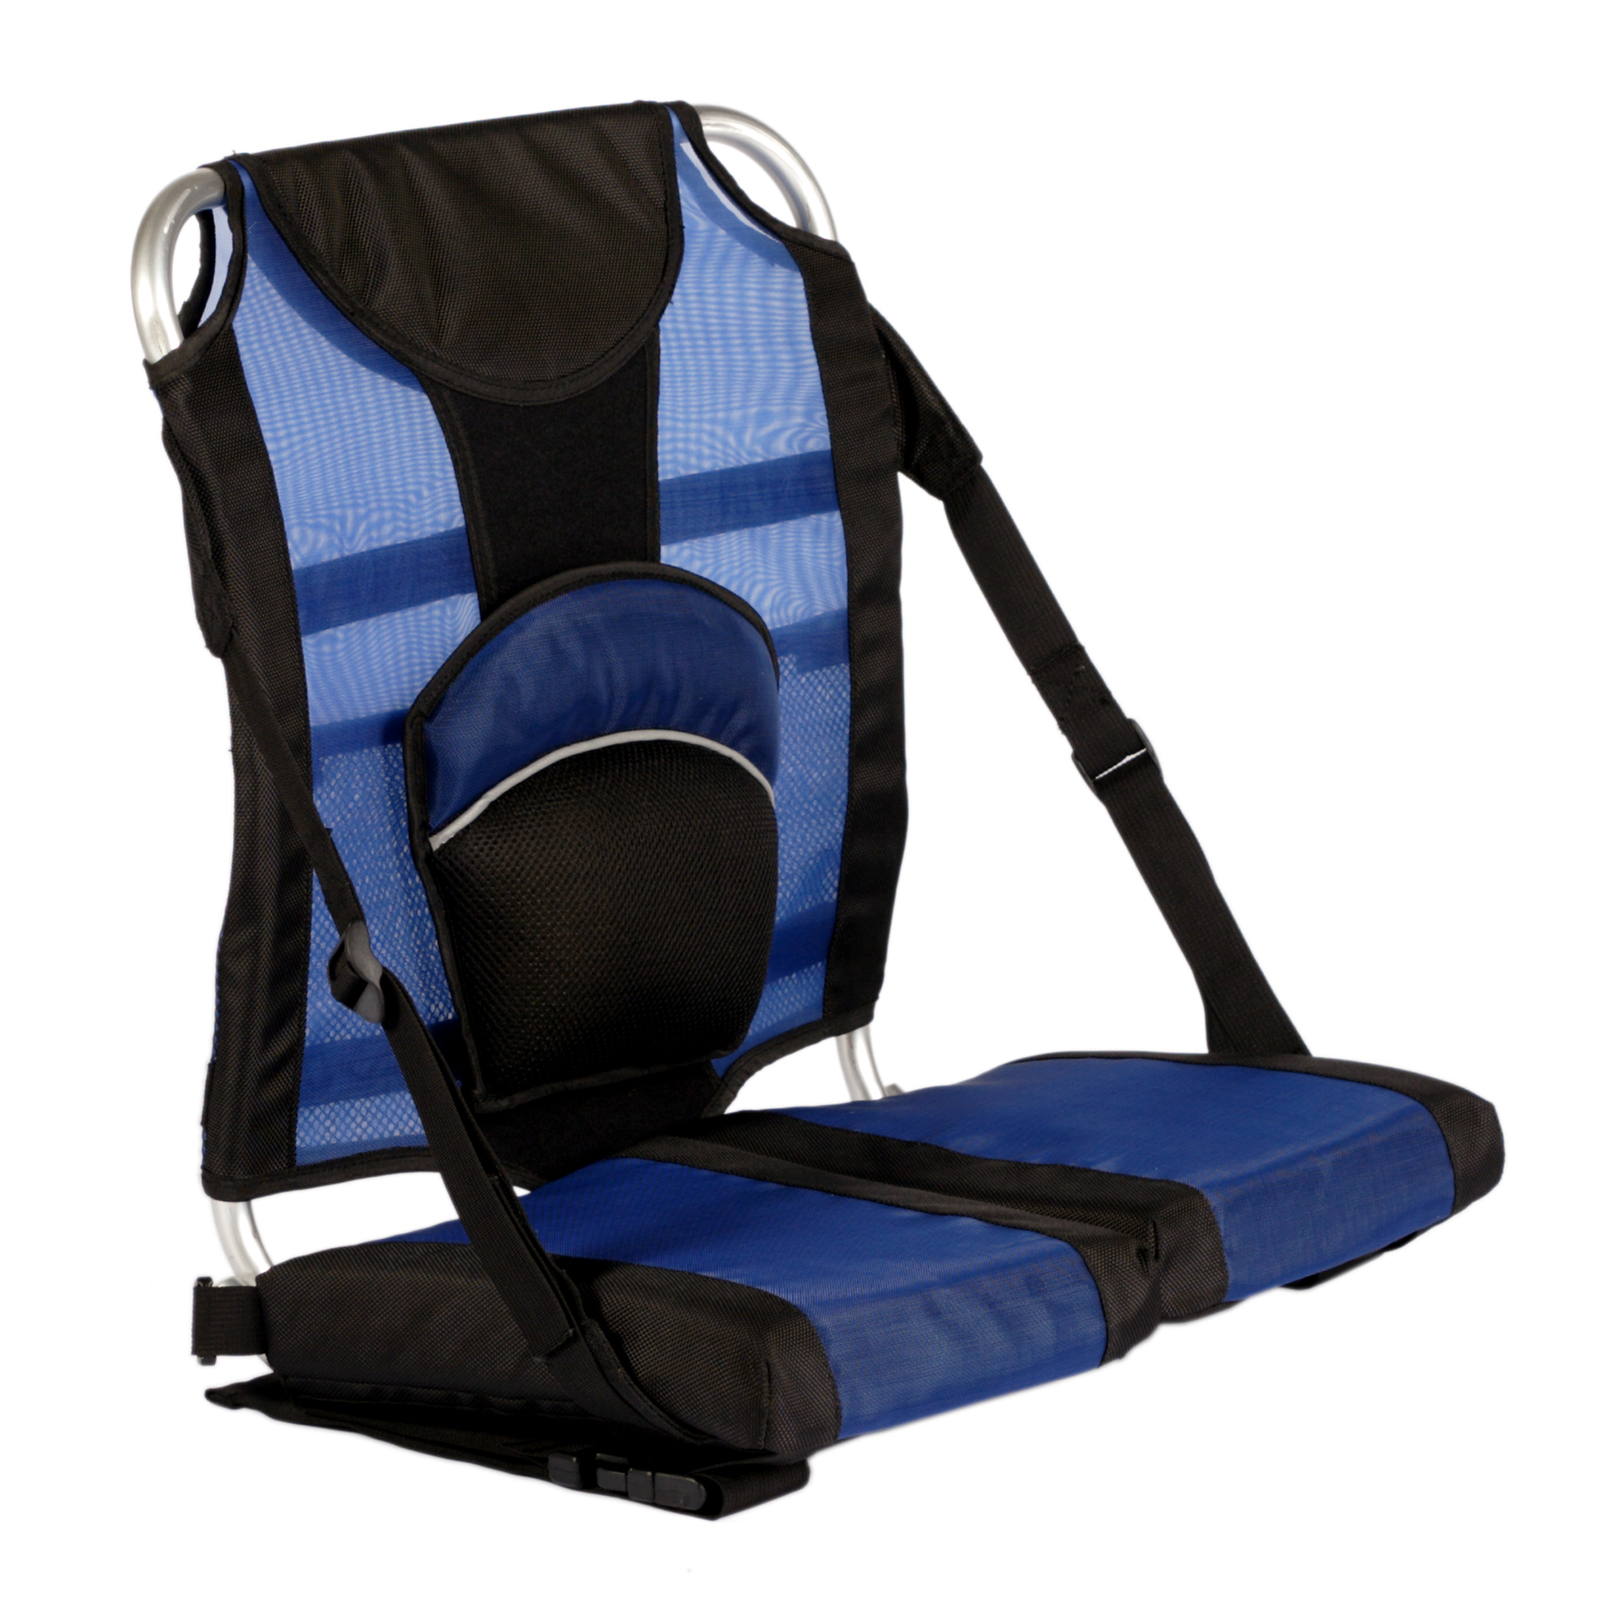 Travel Chair Travel Chair Company The Travel Chair Paddler Lumbar